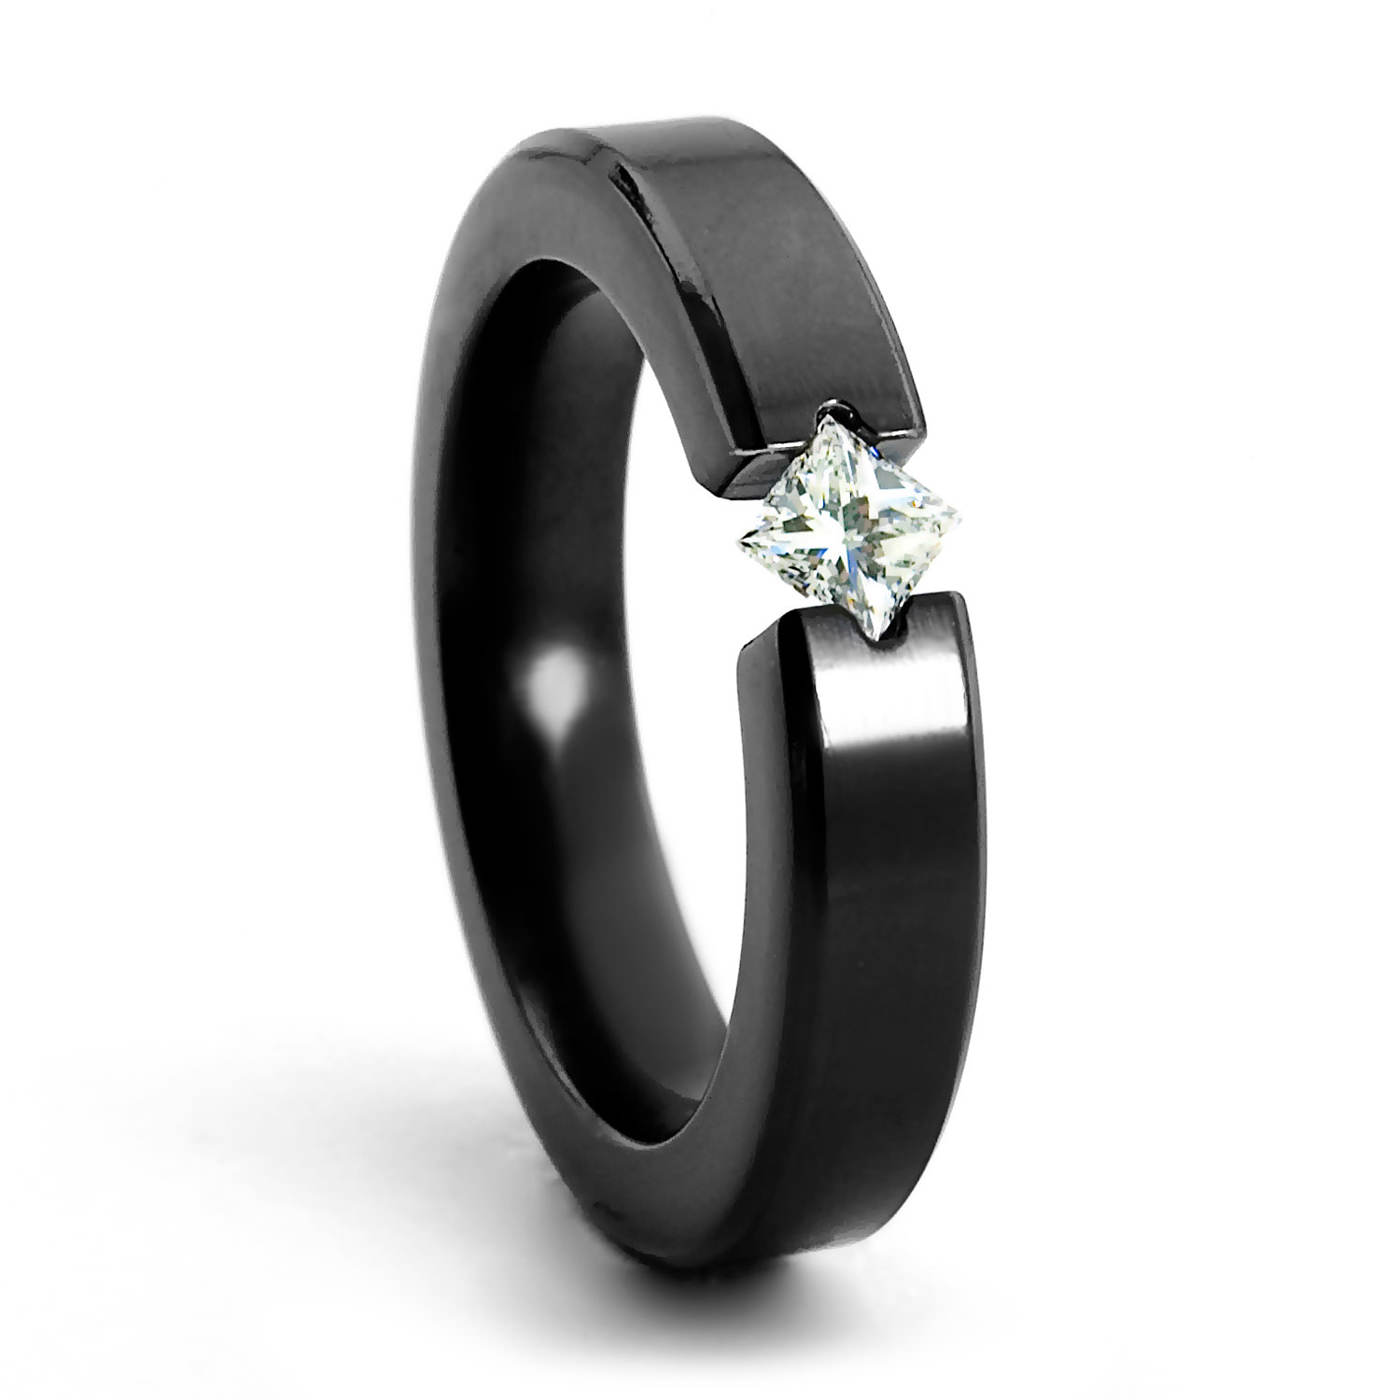 allure black zirconium diamond engagement ring princess cut 4mm